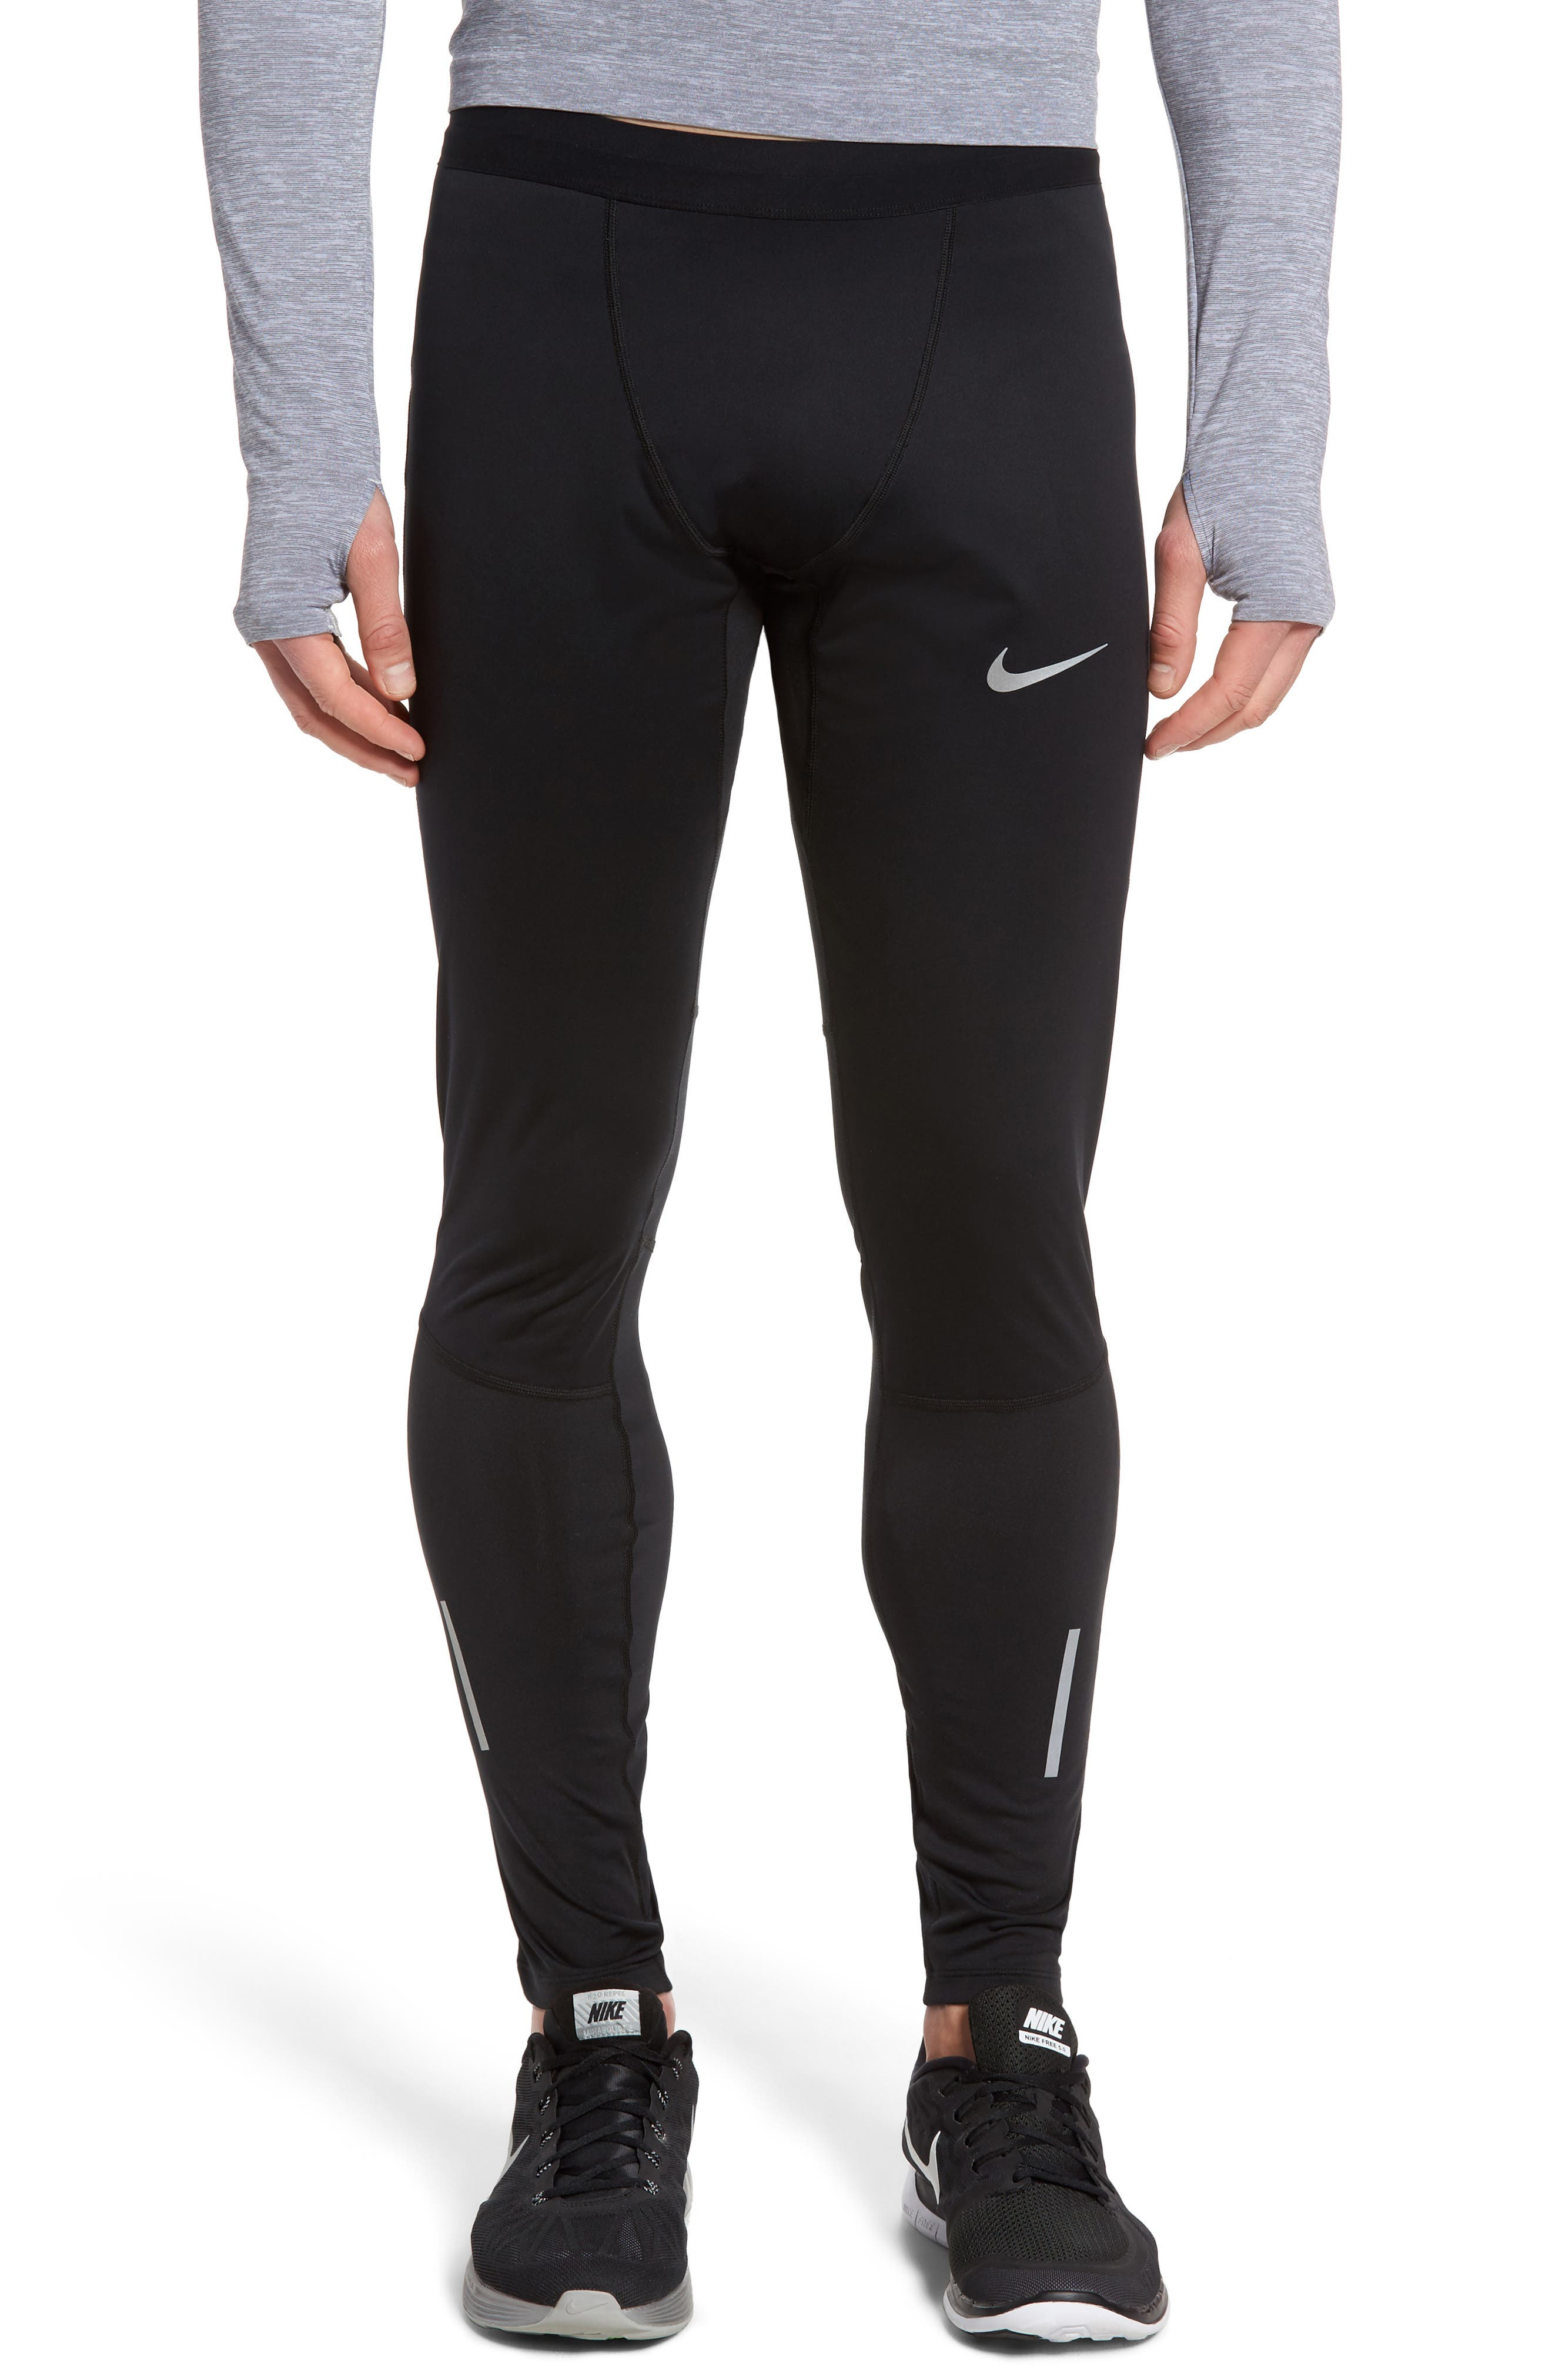 Shield Tech Weather Resistant Running Tights,                         Main,                         color, Black